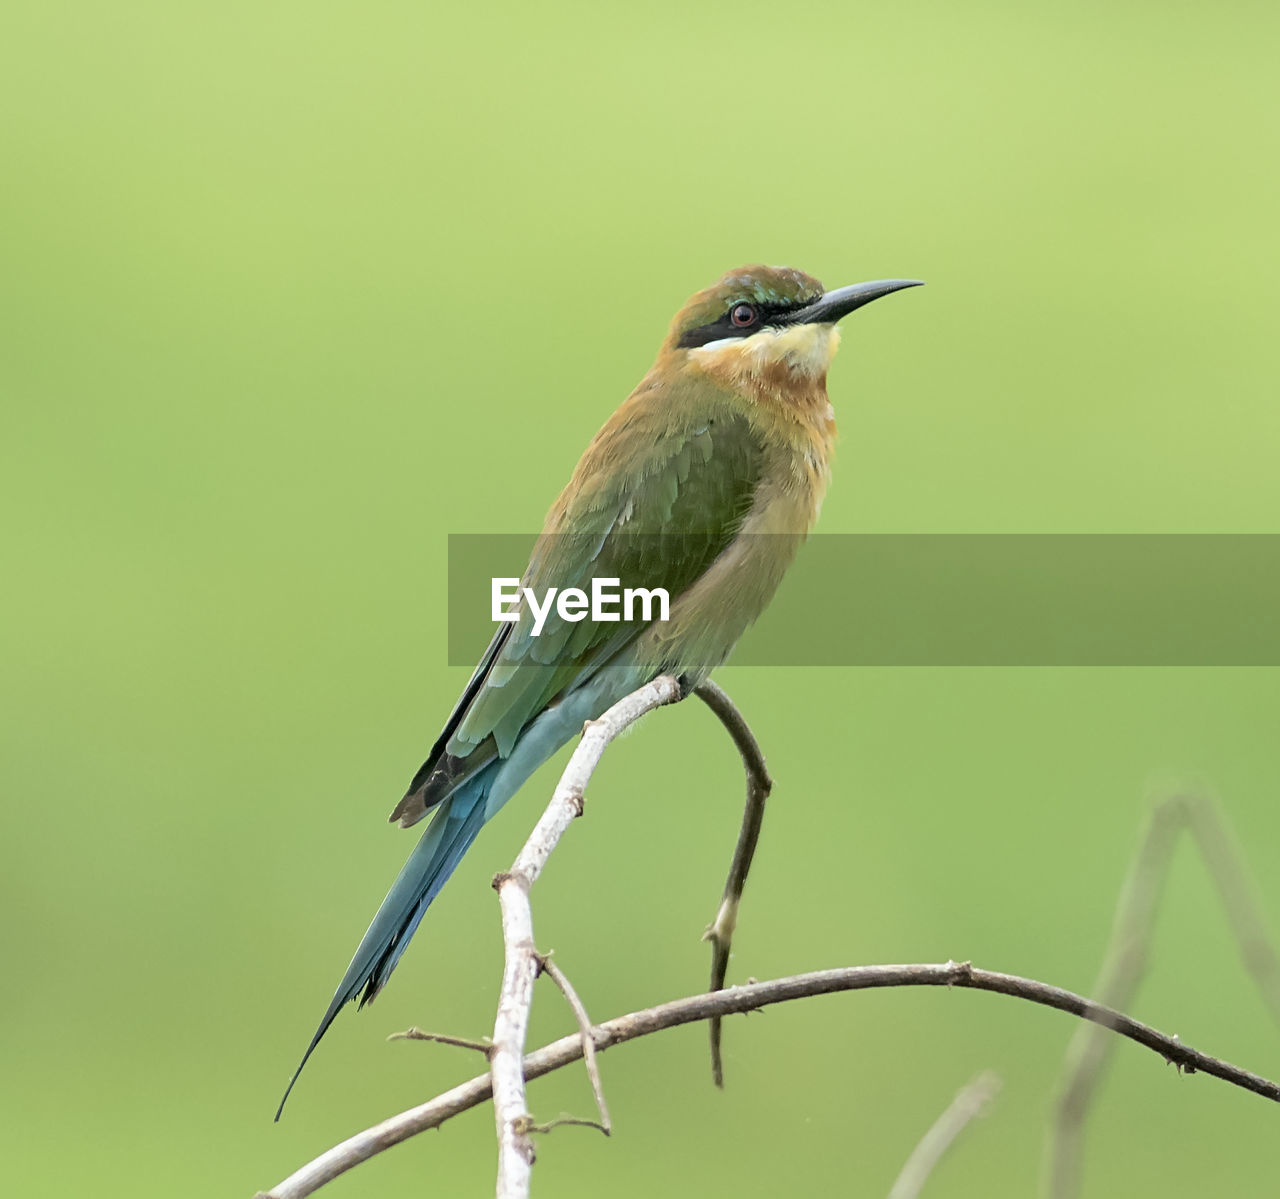 one animal, bird, animals in the wild, animal themes, animal wildlife, perching, twig, no people, green color, kingfisher, day, focus on foreground, nature, outdoors, branch, close-up, beauty in nature